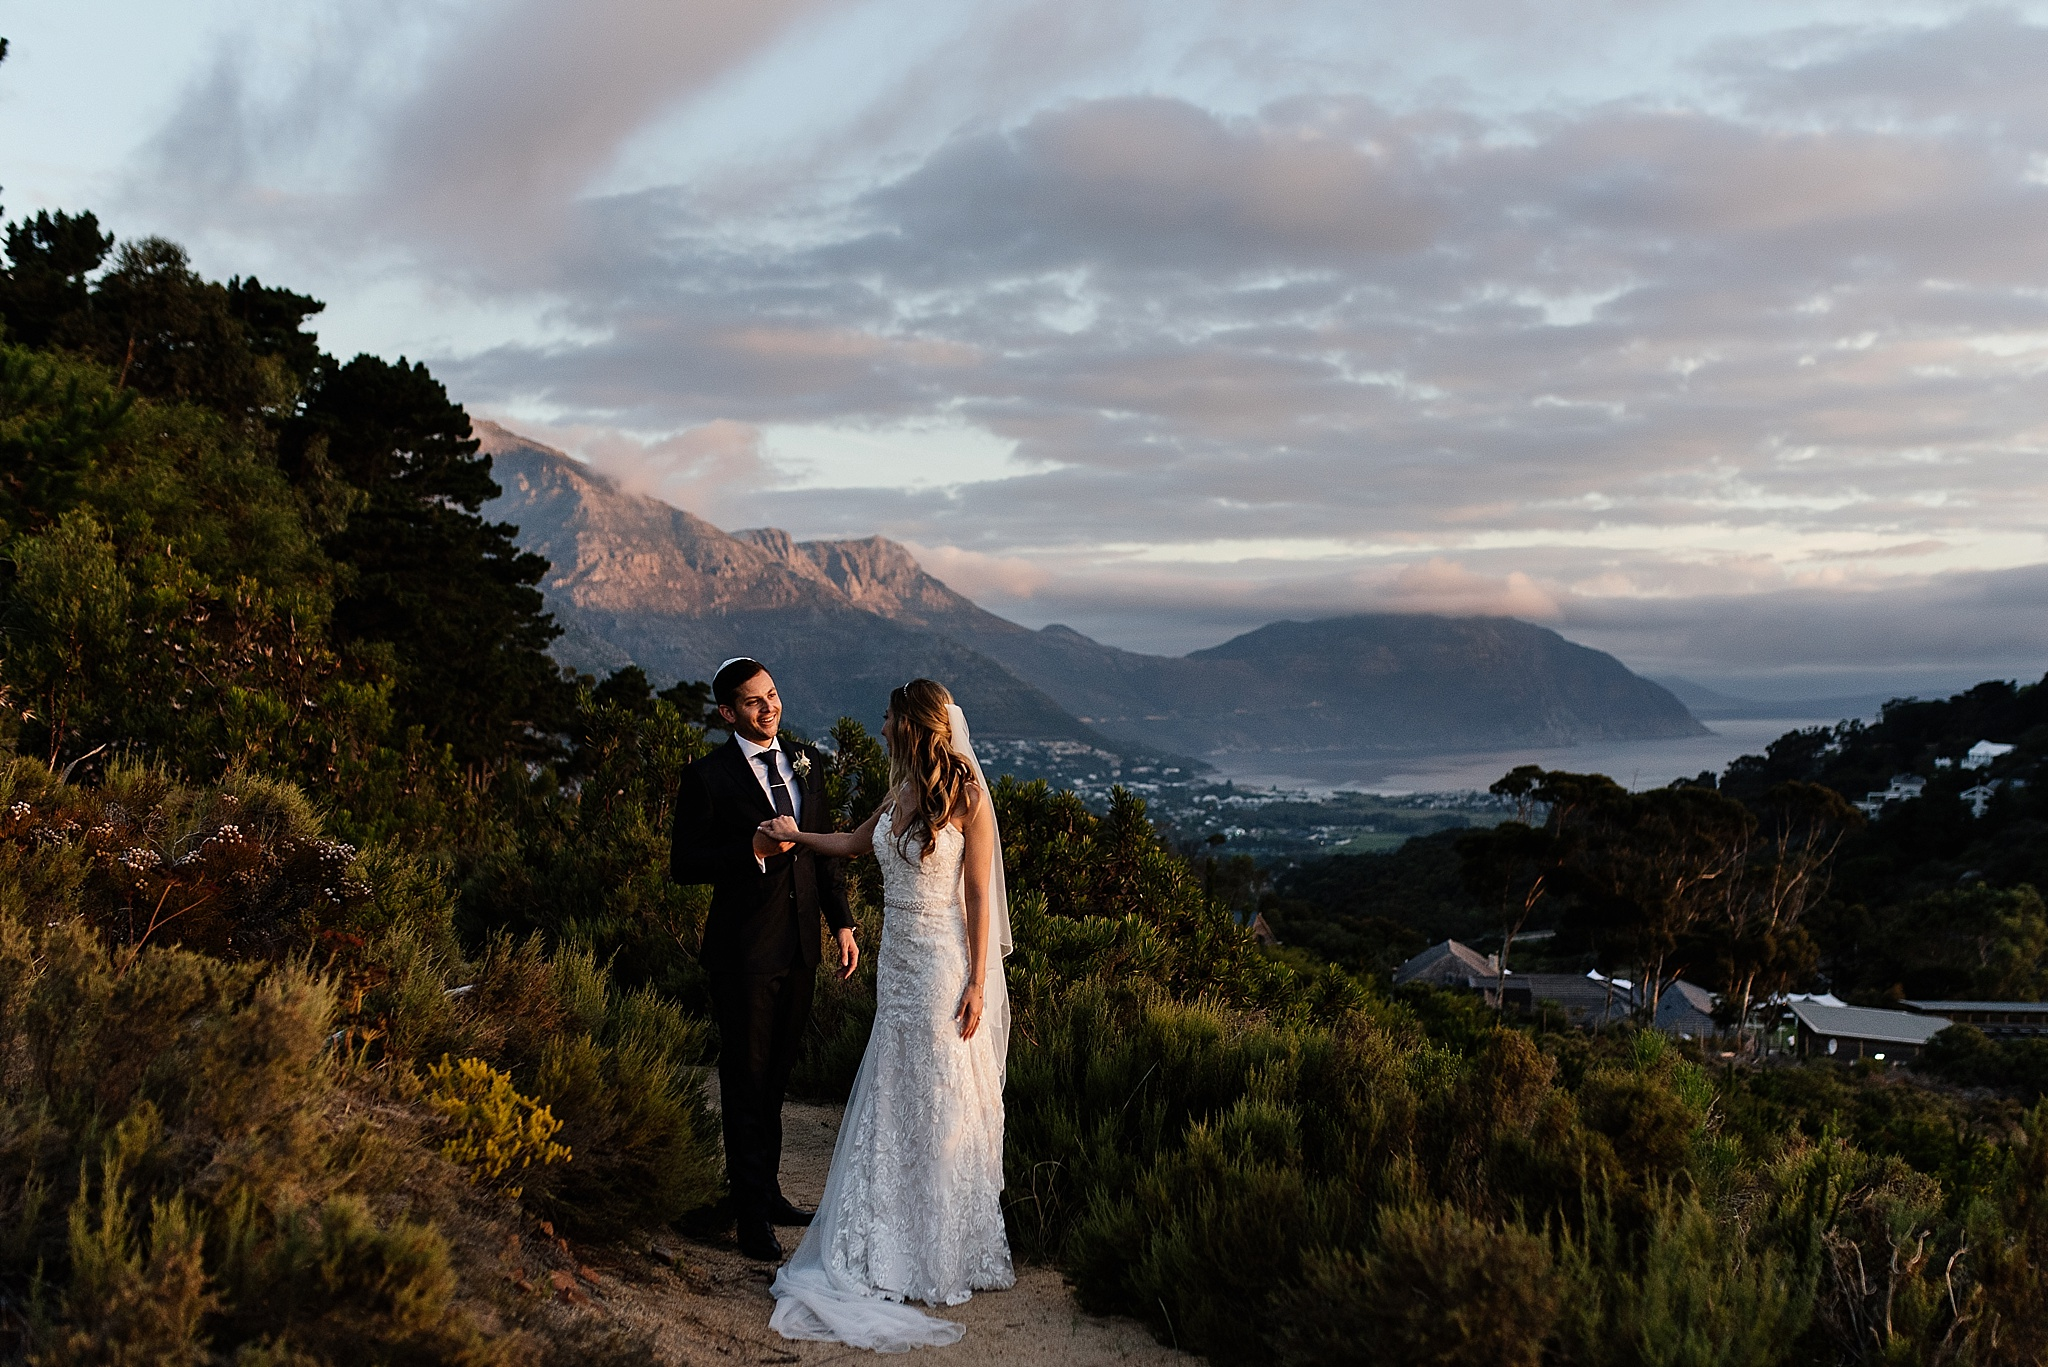 Cape Town Wedding Photographer Darren Bester - SuikerBossie - Stephen and Mikaela_0043.jpg